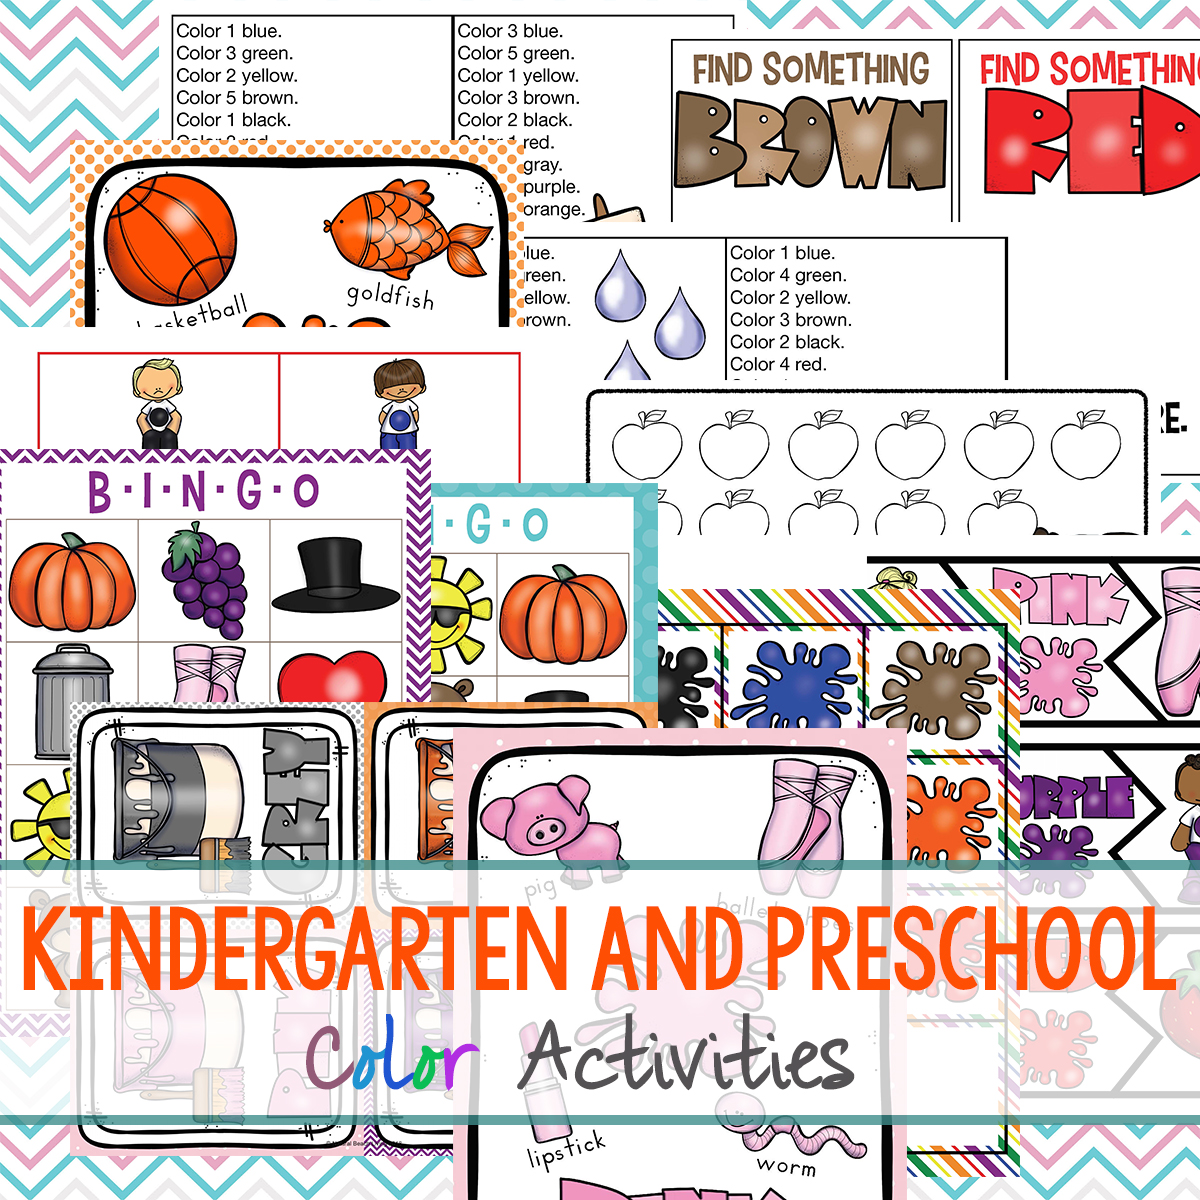 Preschool Color Theme Printables, Lesson Plans and Color theme activities for toddlers, preschool, and kindergarten. These are fun, hands-on activities, and ideas for teaching children how to recognize colors at home or in the classroom. Teaching Colors